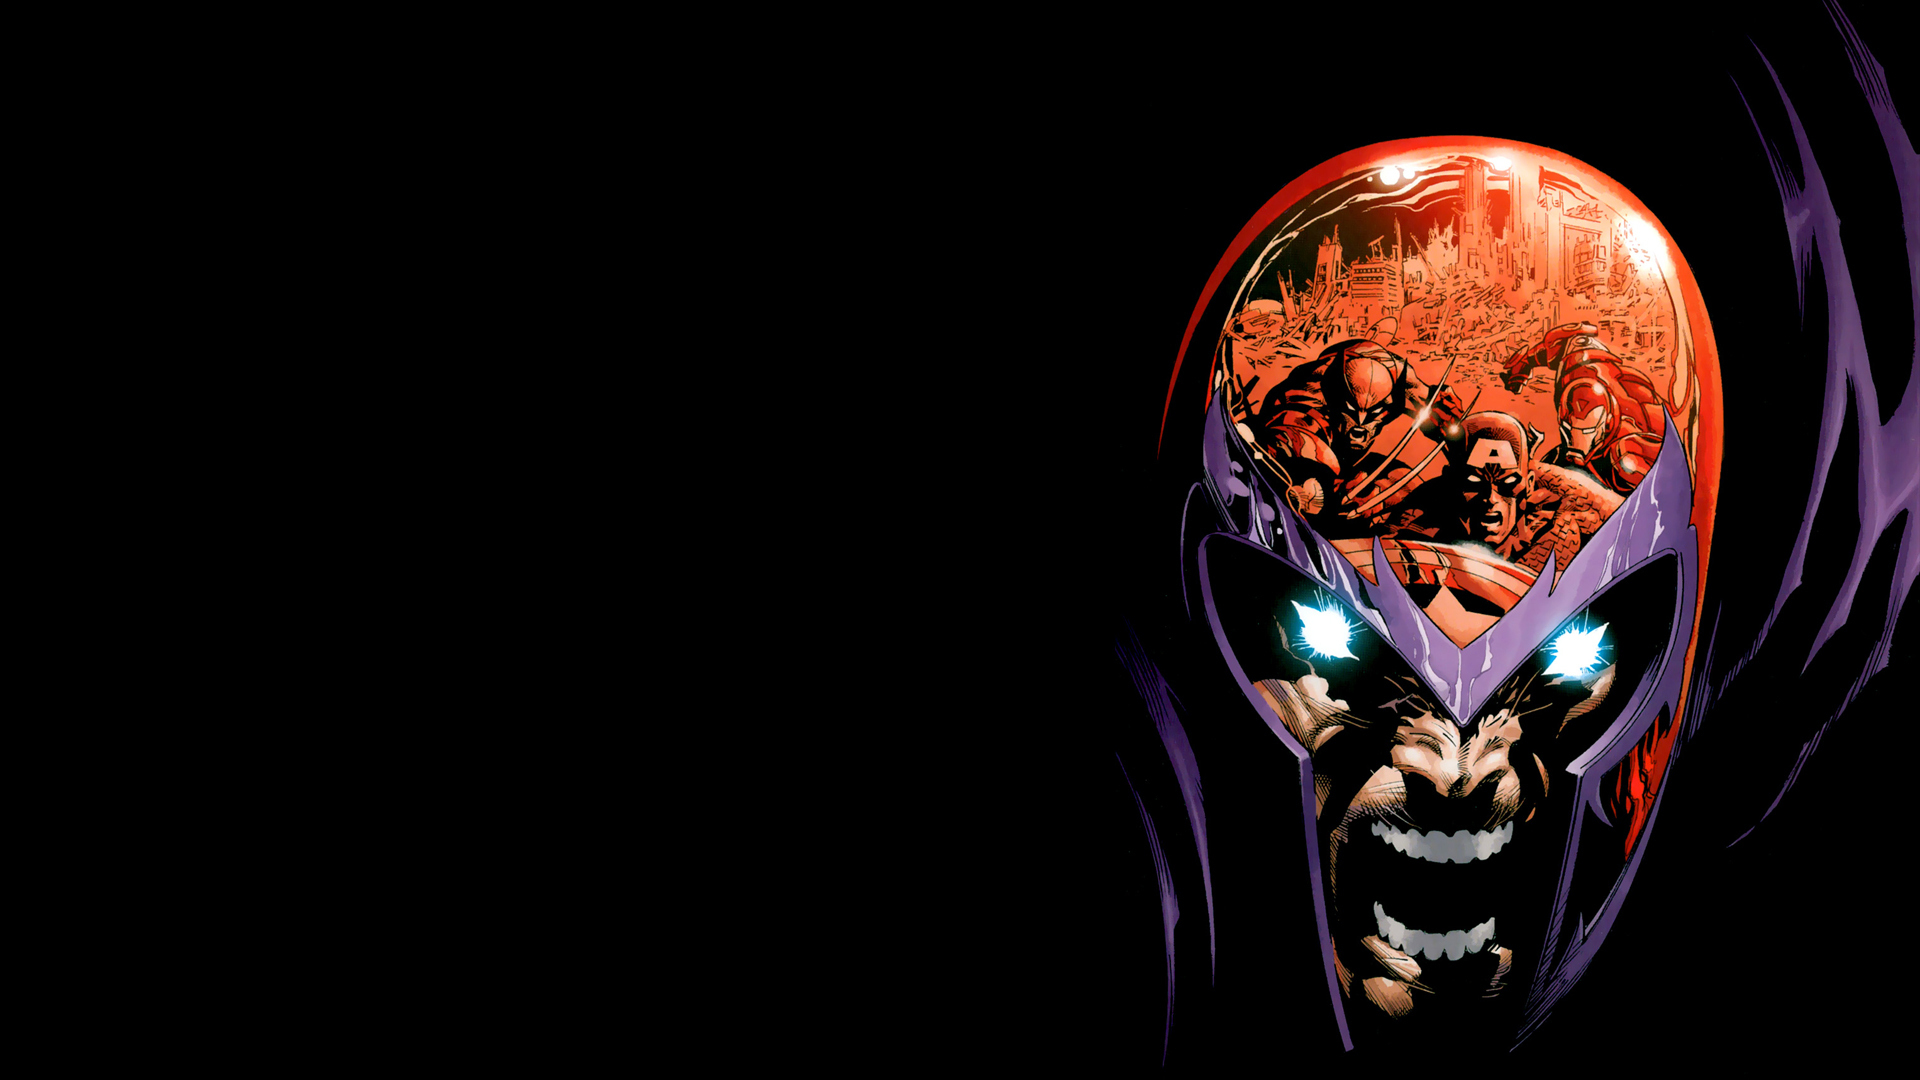 Magneto-X-Men Computer Wallpapers, Desktop Backgrounds | 1920x1080 ...